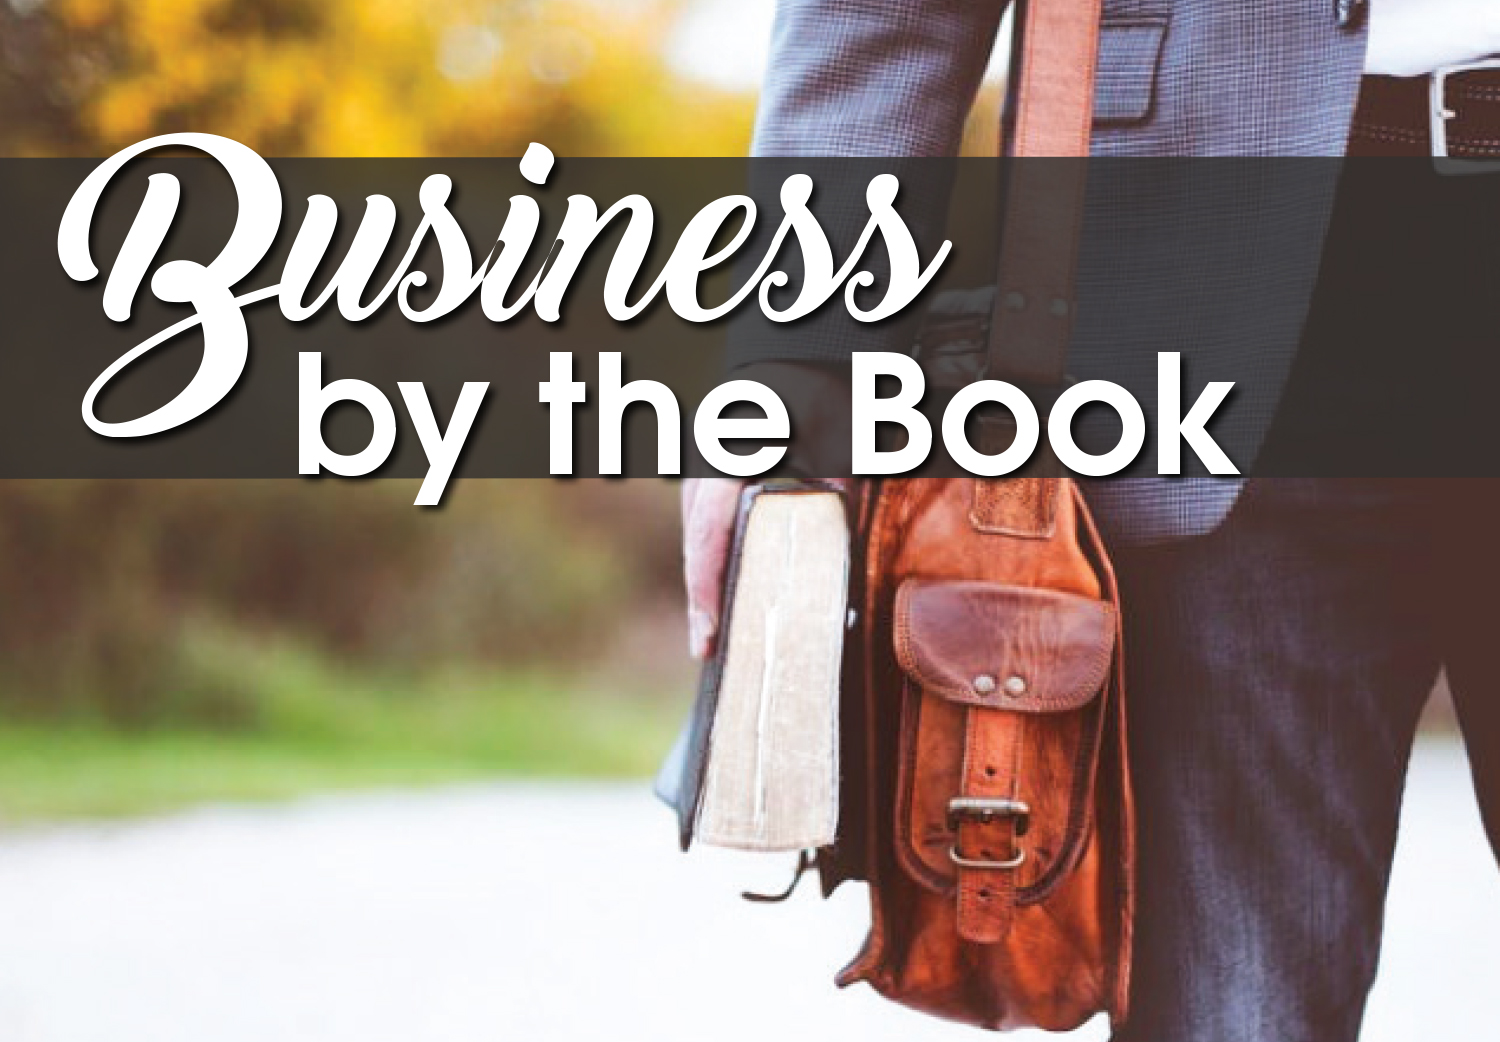 Business by The Book 2018